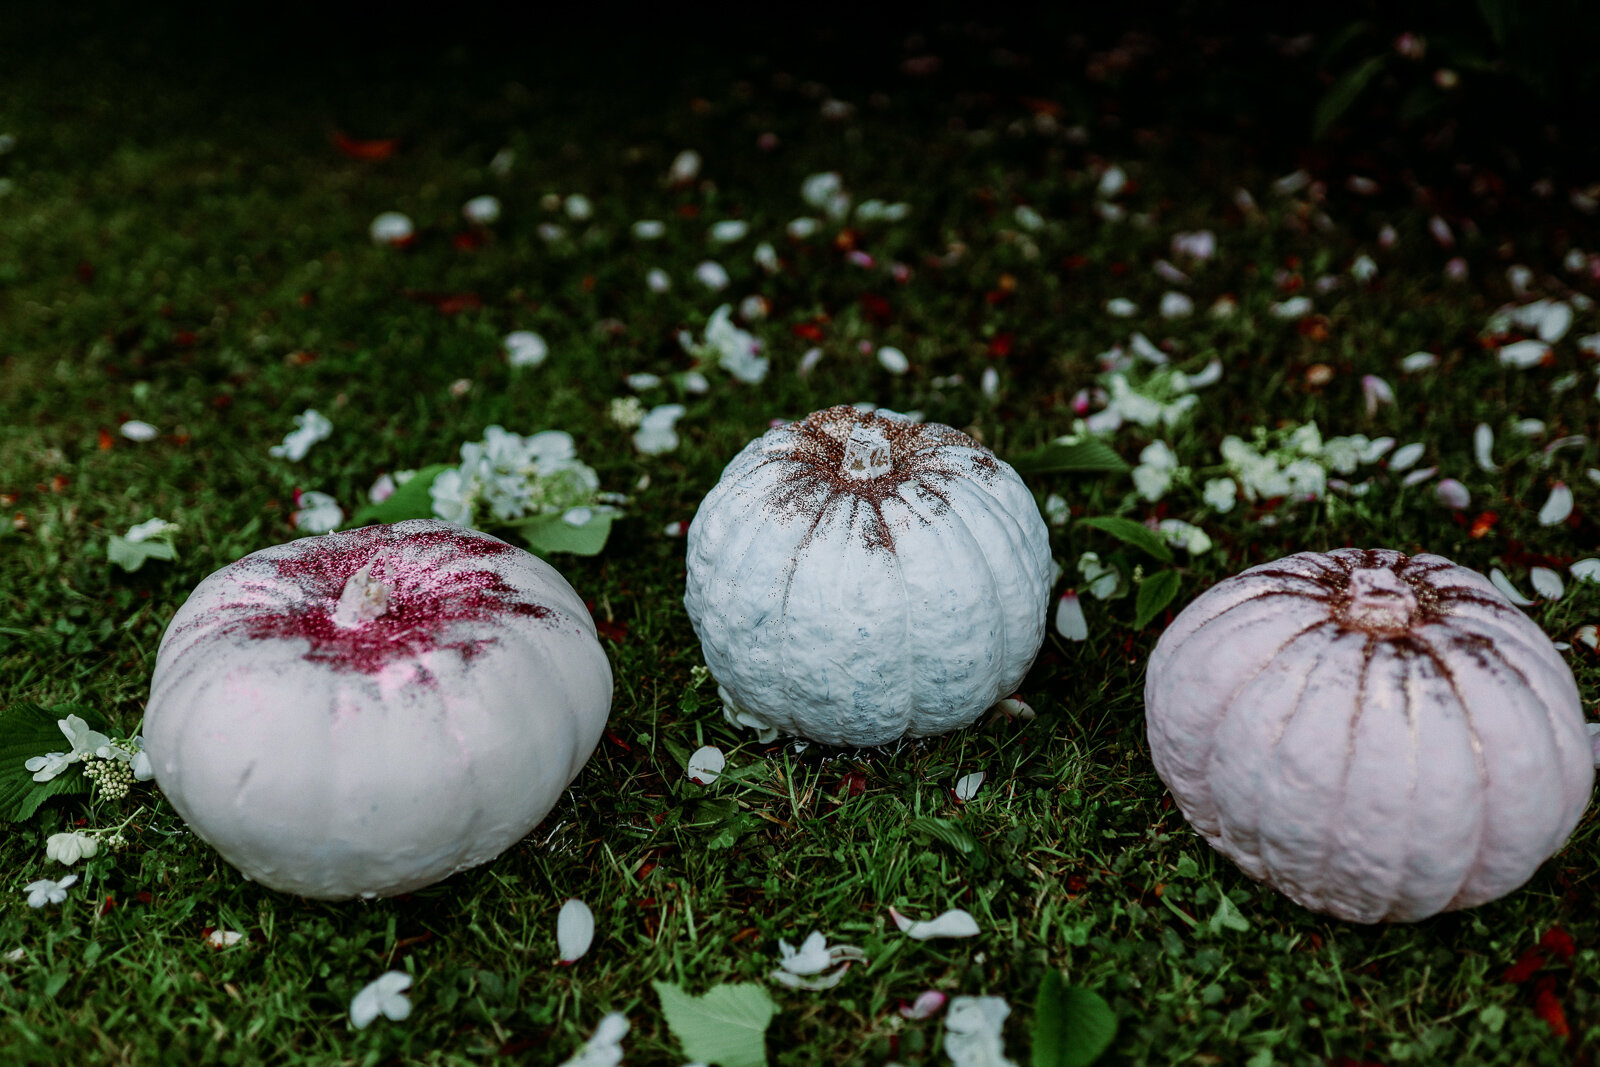 DIY_Painted_Pastel_Pumpkins_by_Clever_Poppy_finished_glitter_grass2.jpg